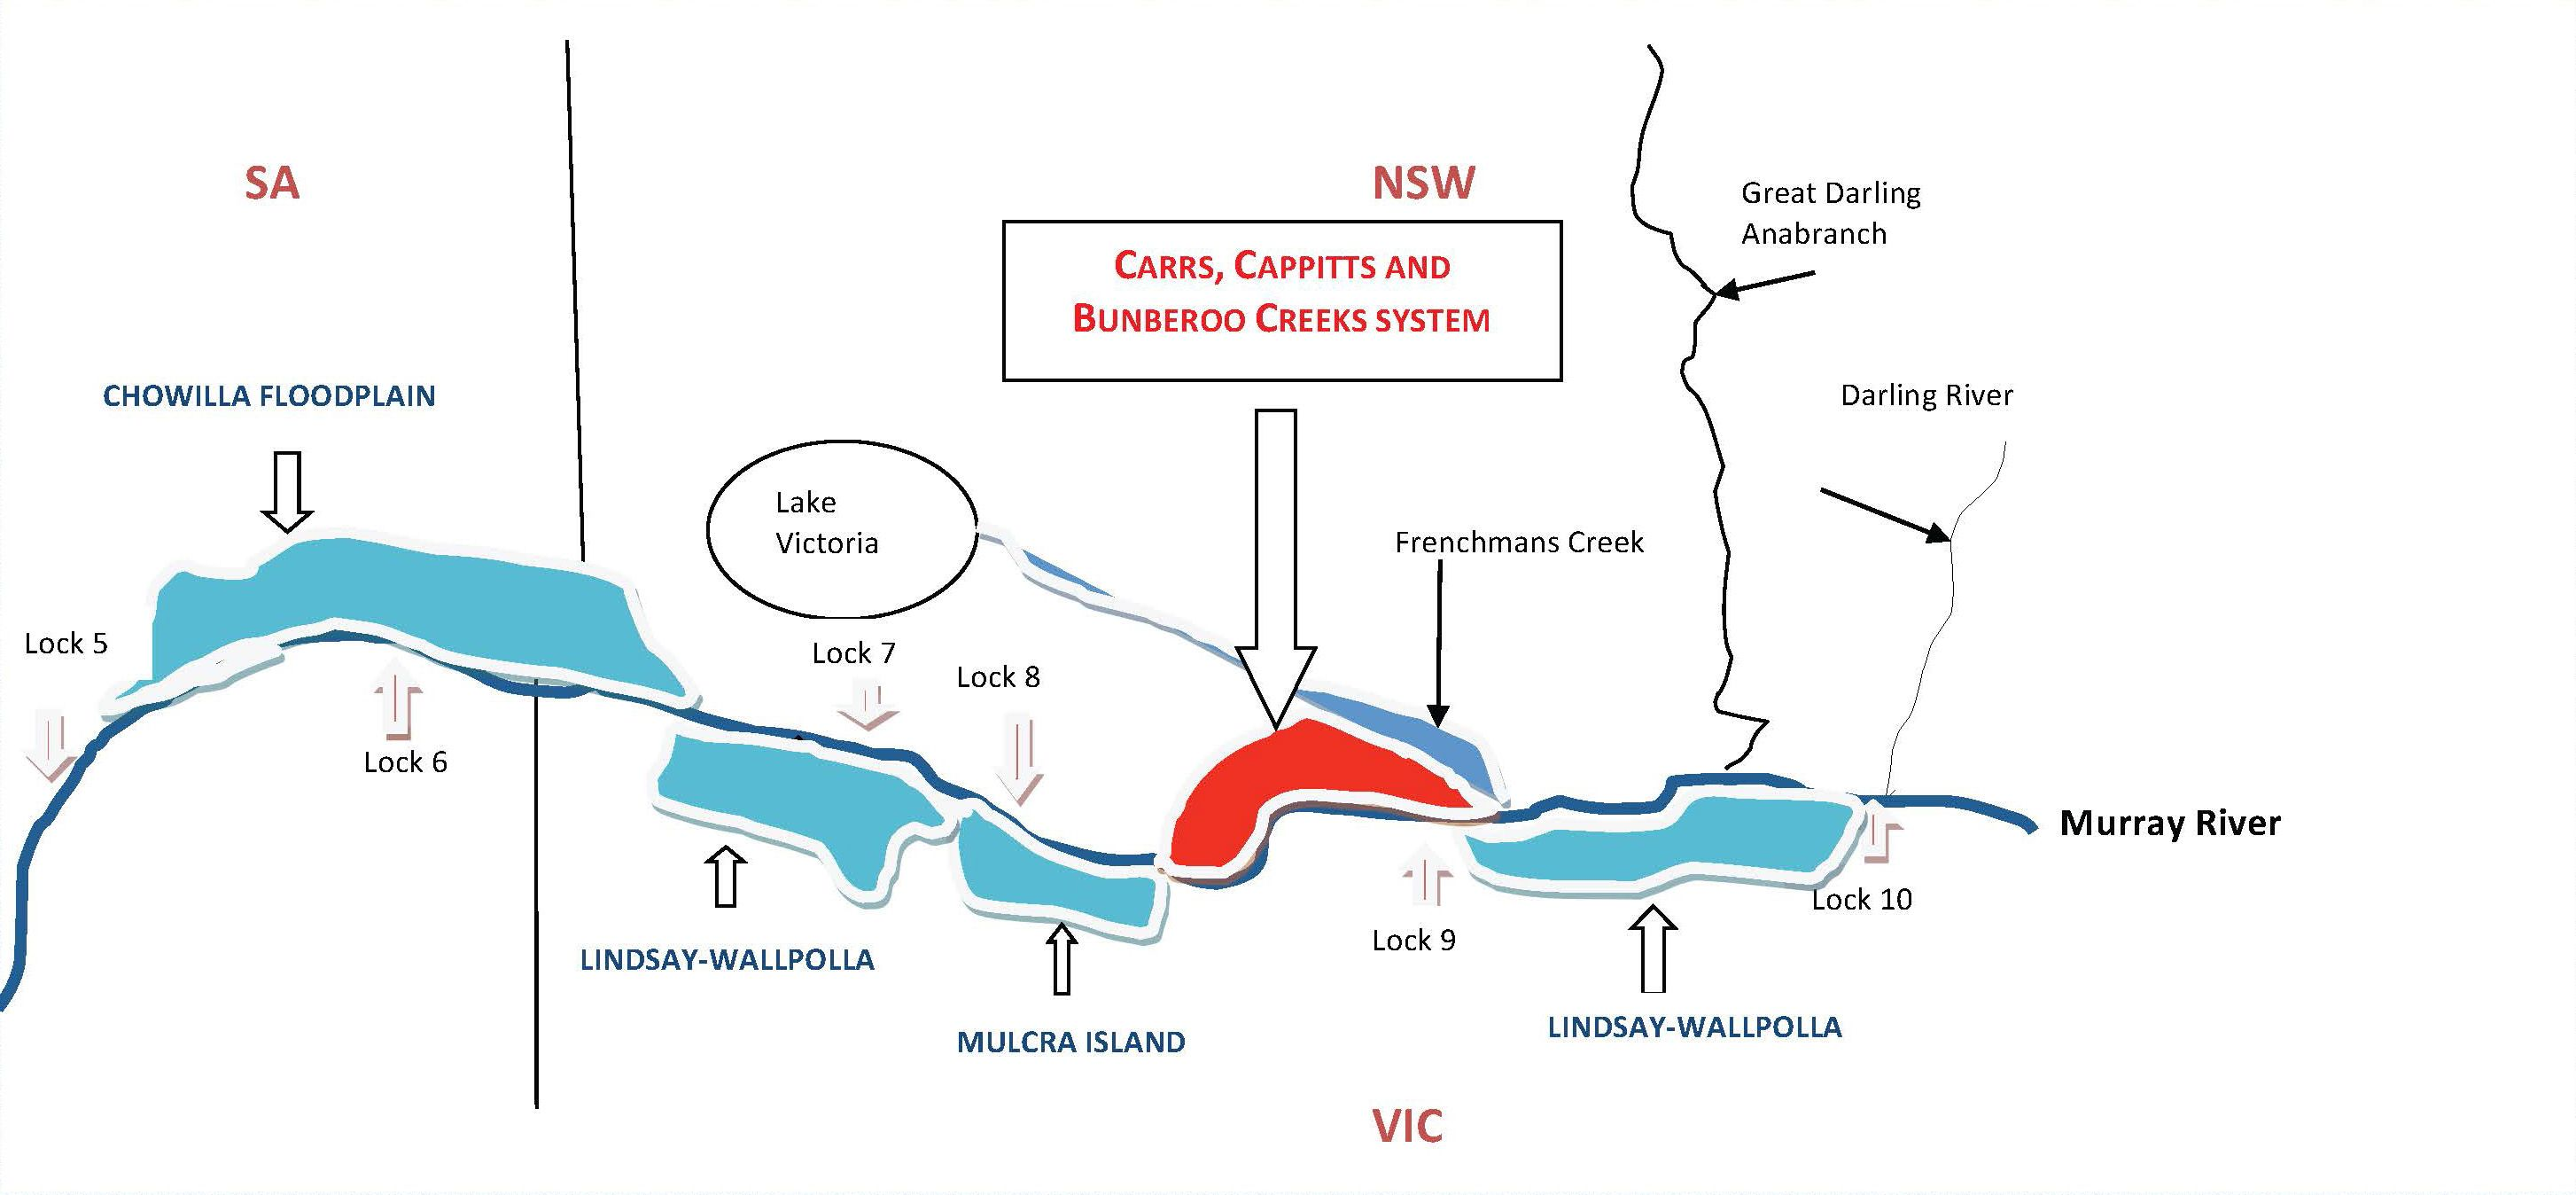 Schematic diagram showing the CCB Creeks system (shaded red) in relation to The Living Murray icon sites (shaded blue). Not to scale.